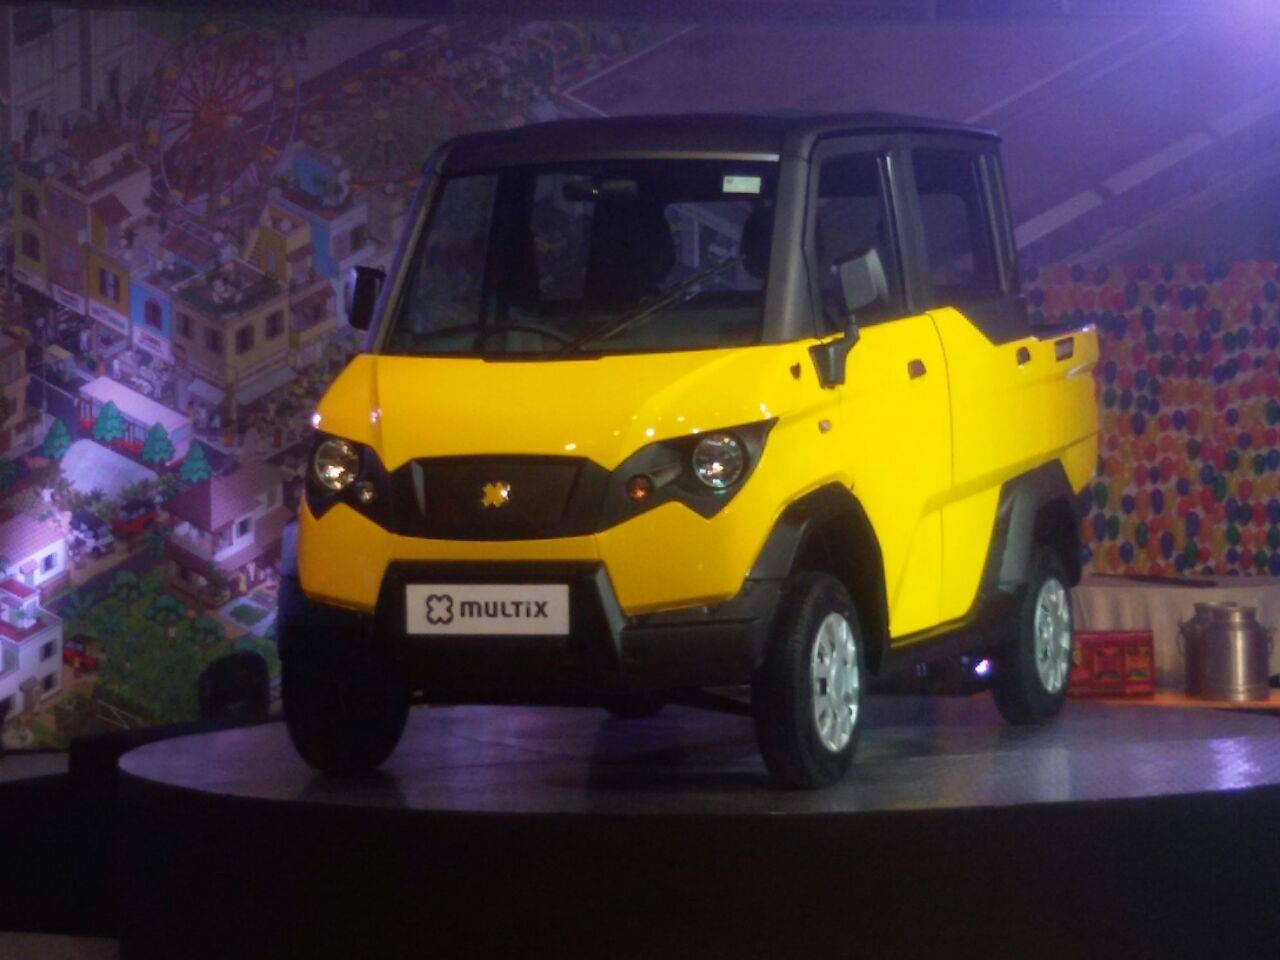 Eicher Polaris Multix Launched Priced At Rs 2 32 Lakhs